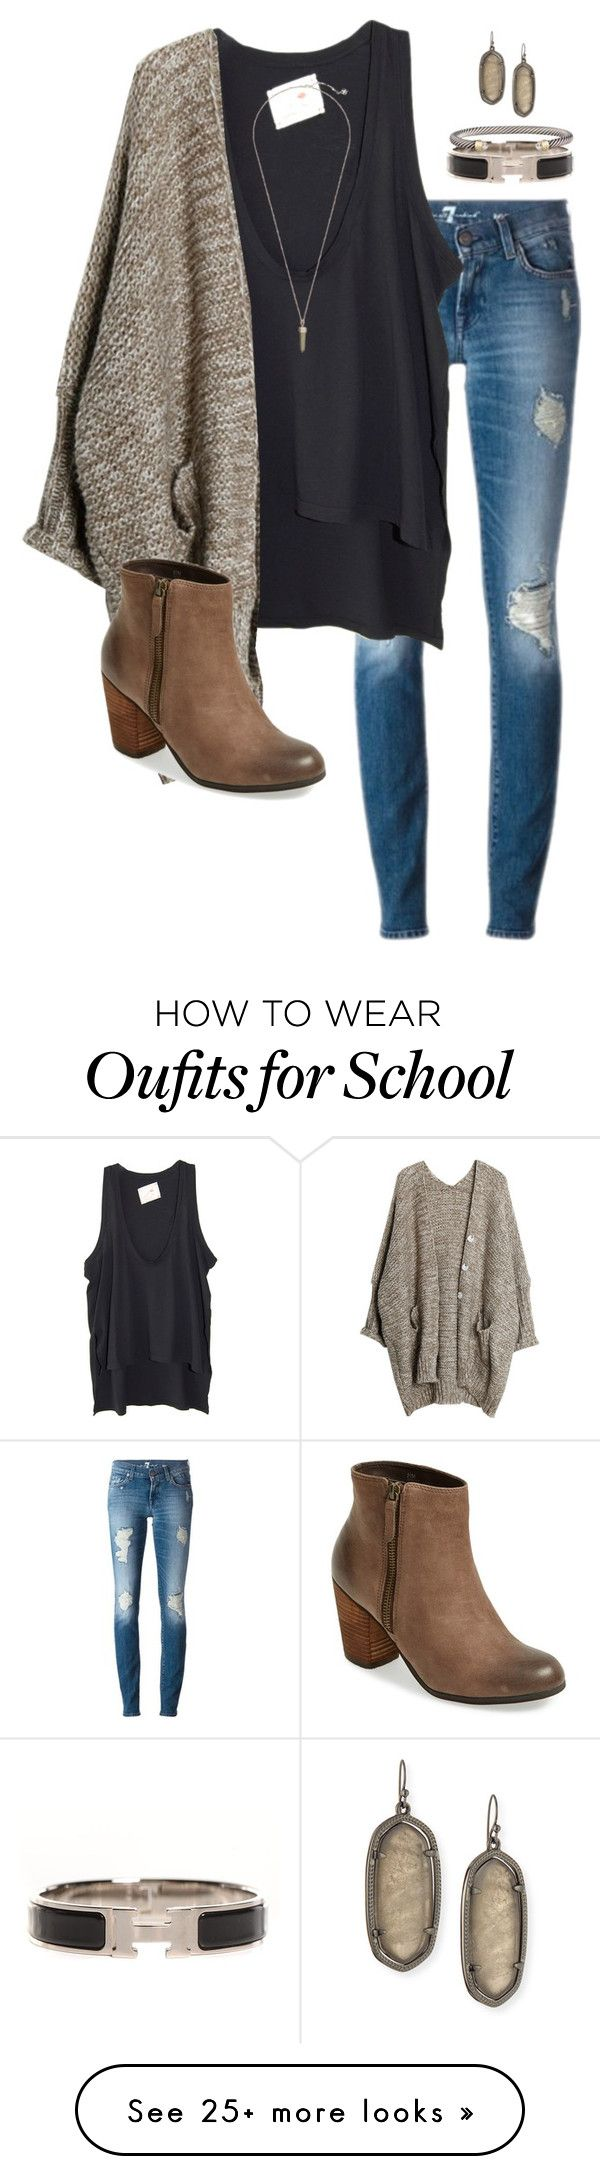 how to make outfit collage for pinterest